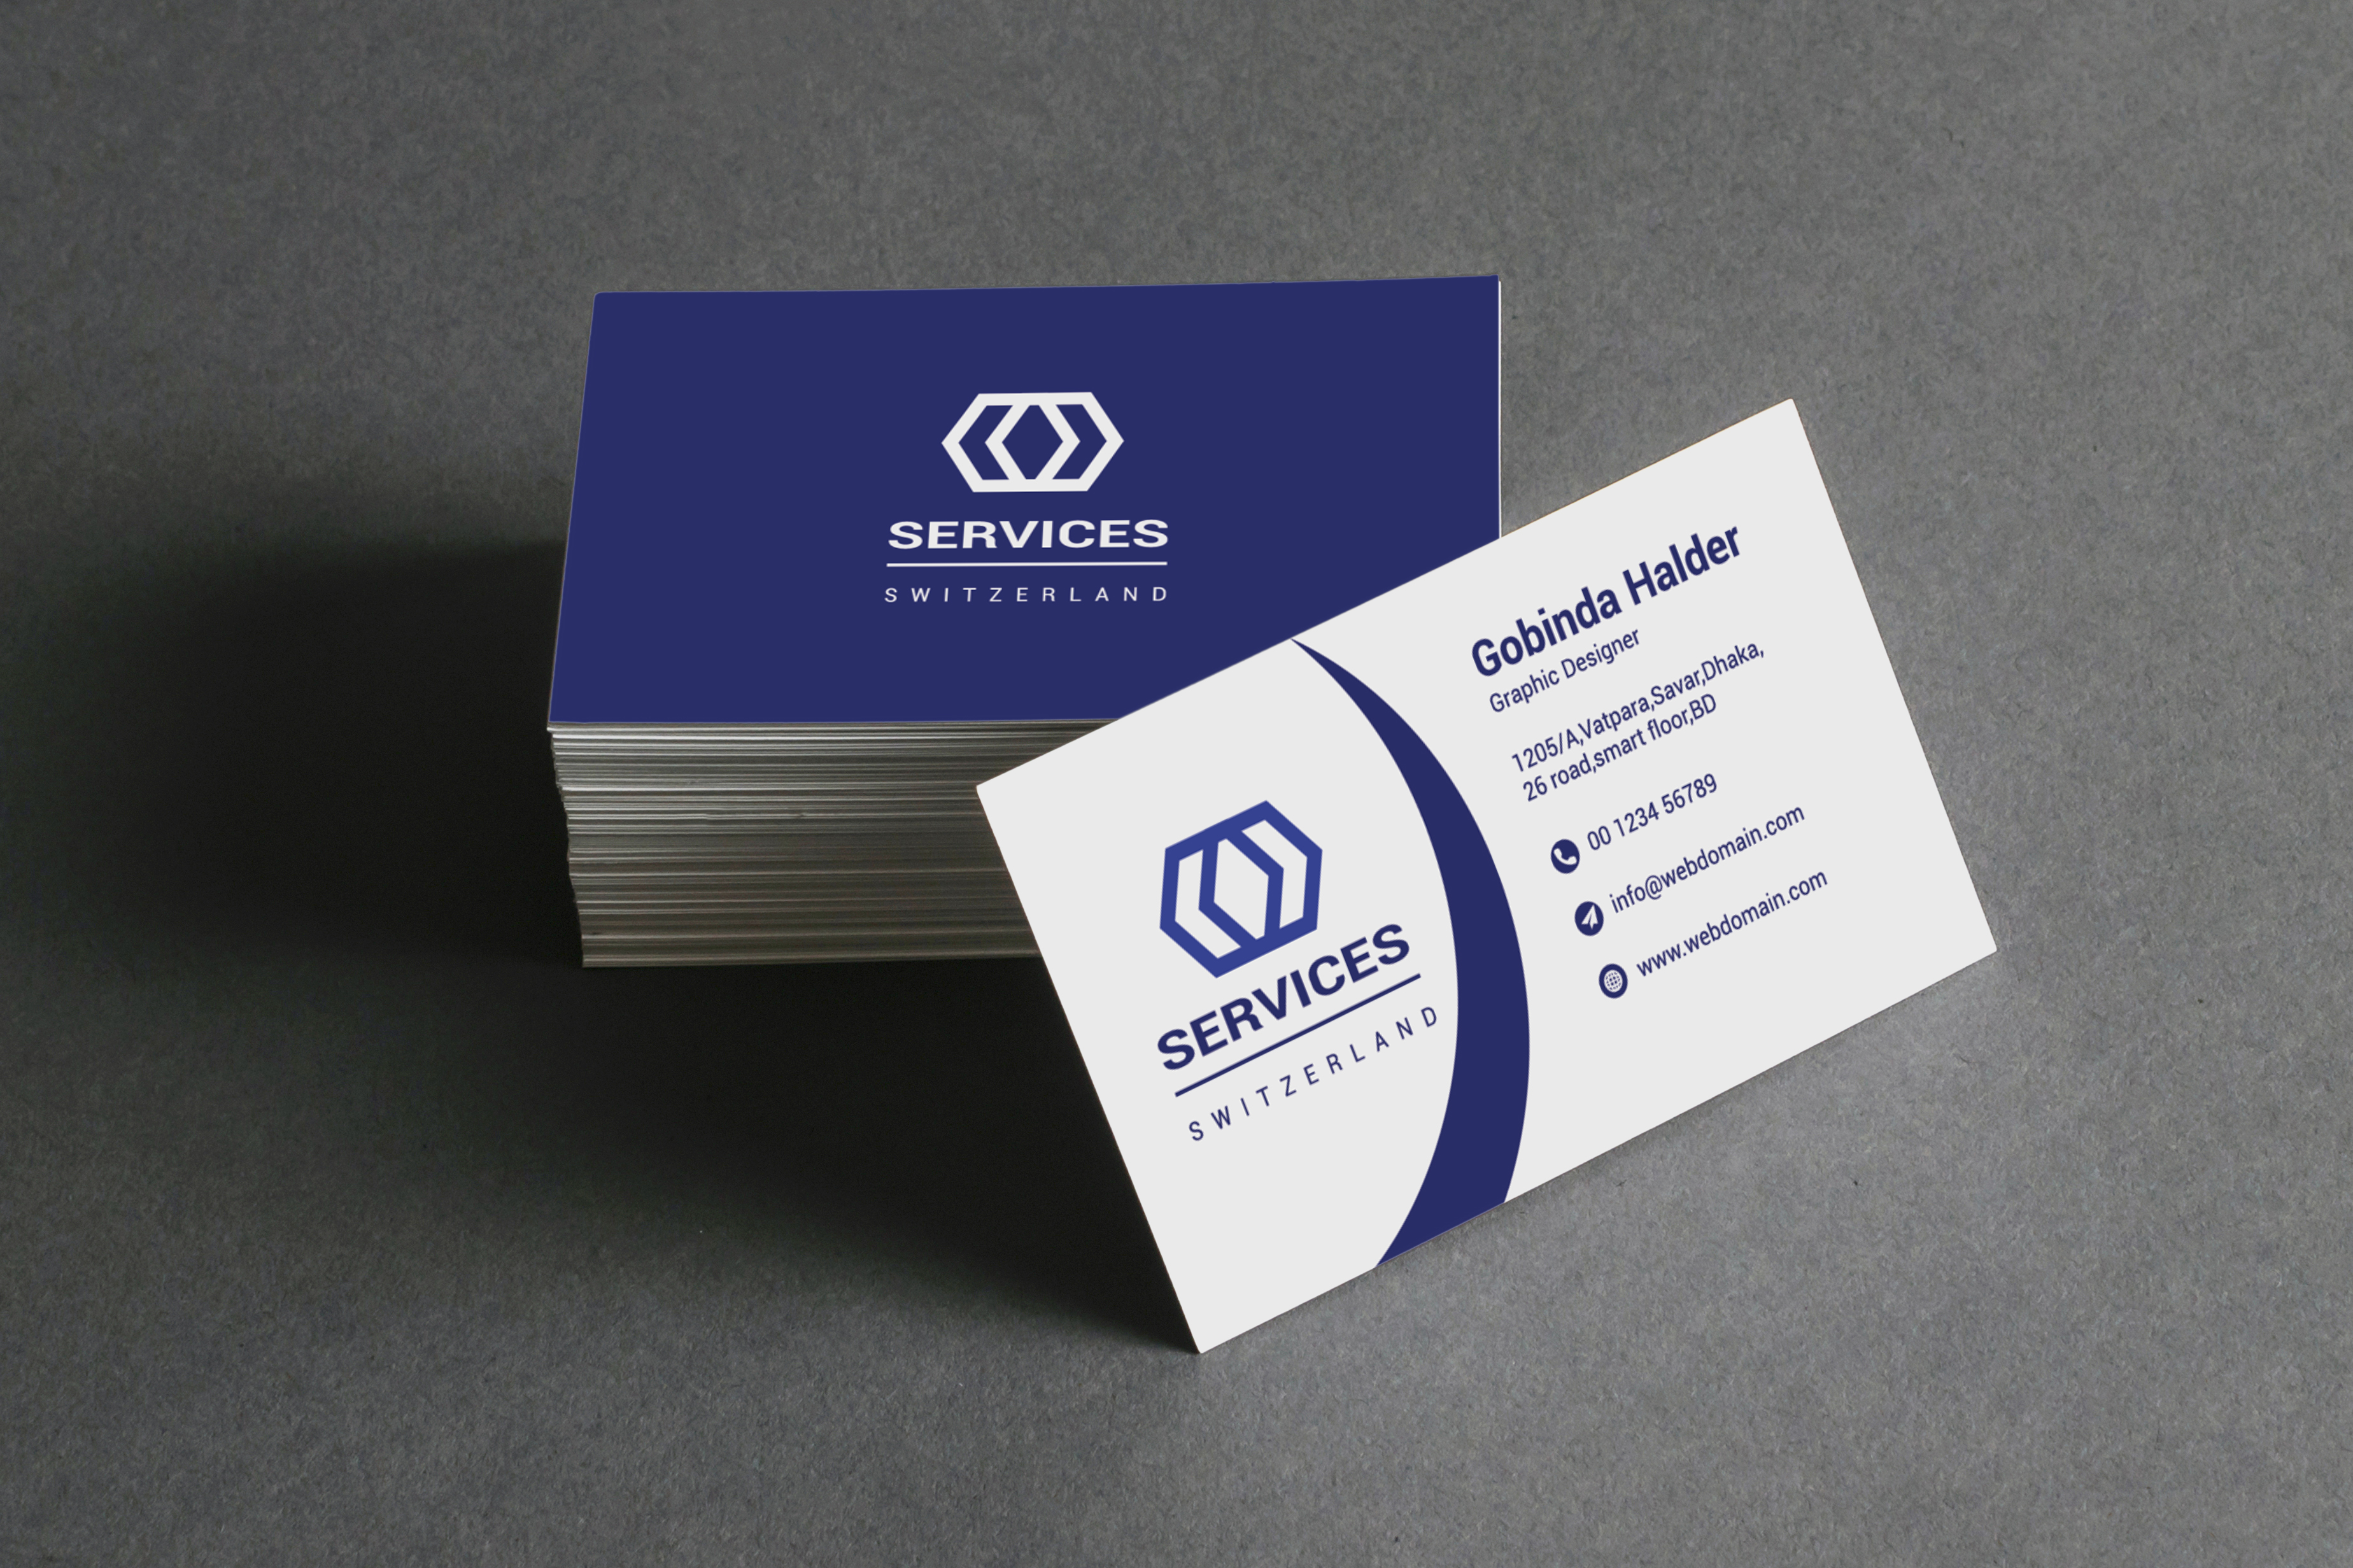 I Will Create Double Sided Amazing Unique Business Card Design for Your Business or Personal